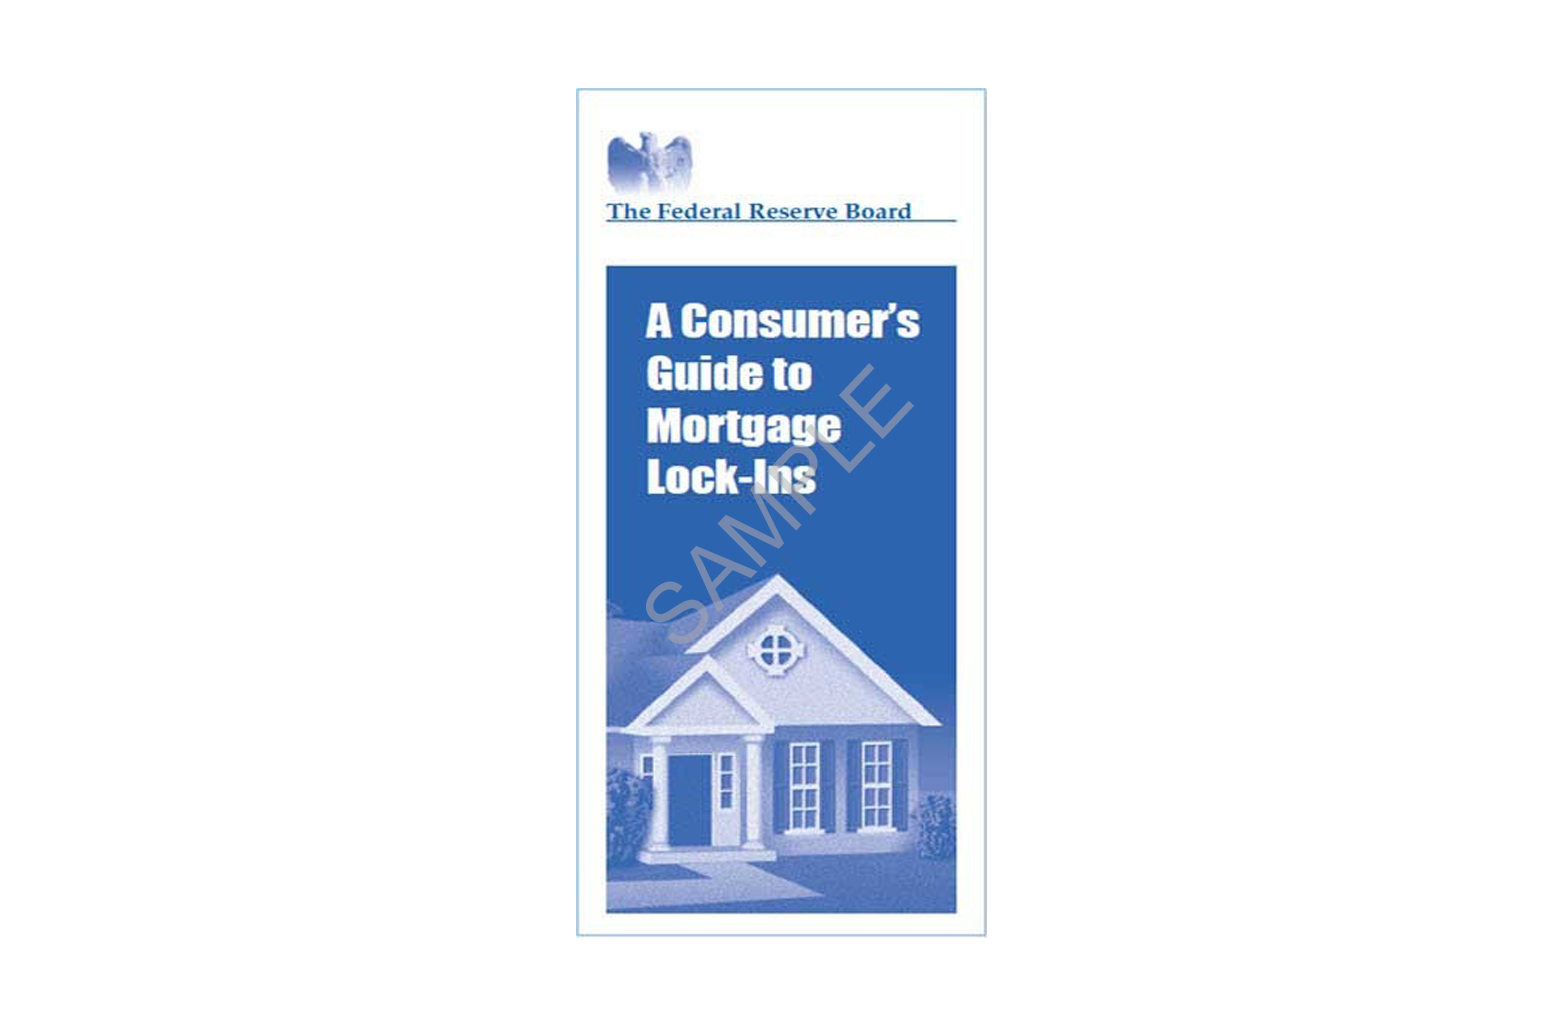 Consumers Guide to Mortgage LockIns